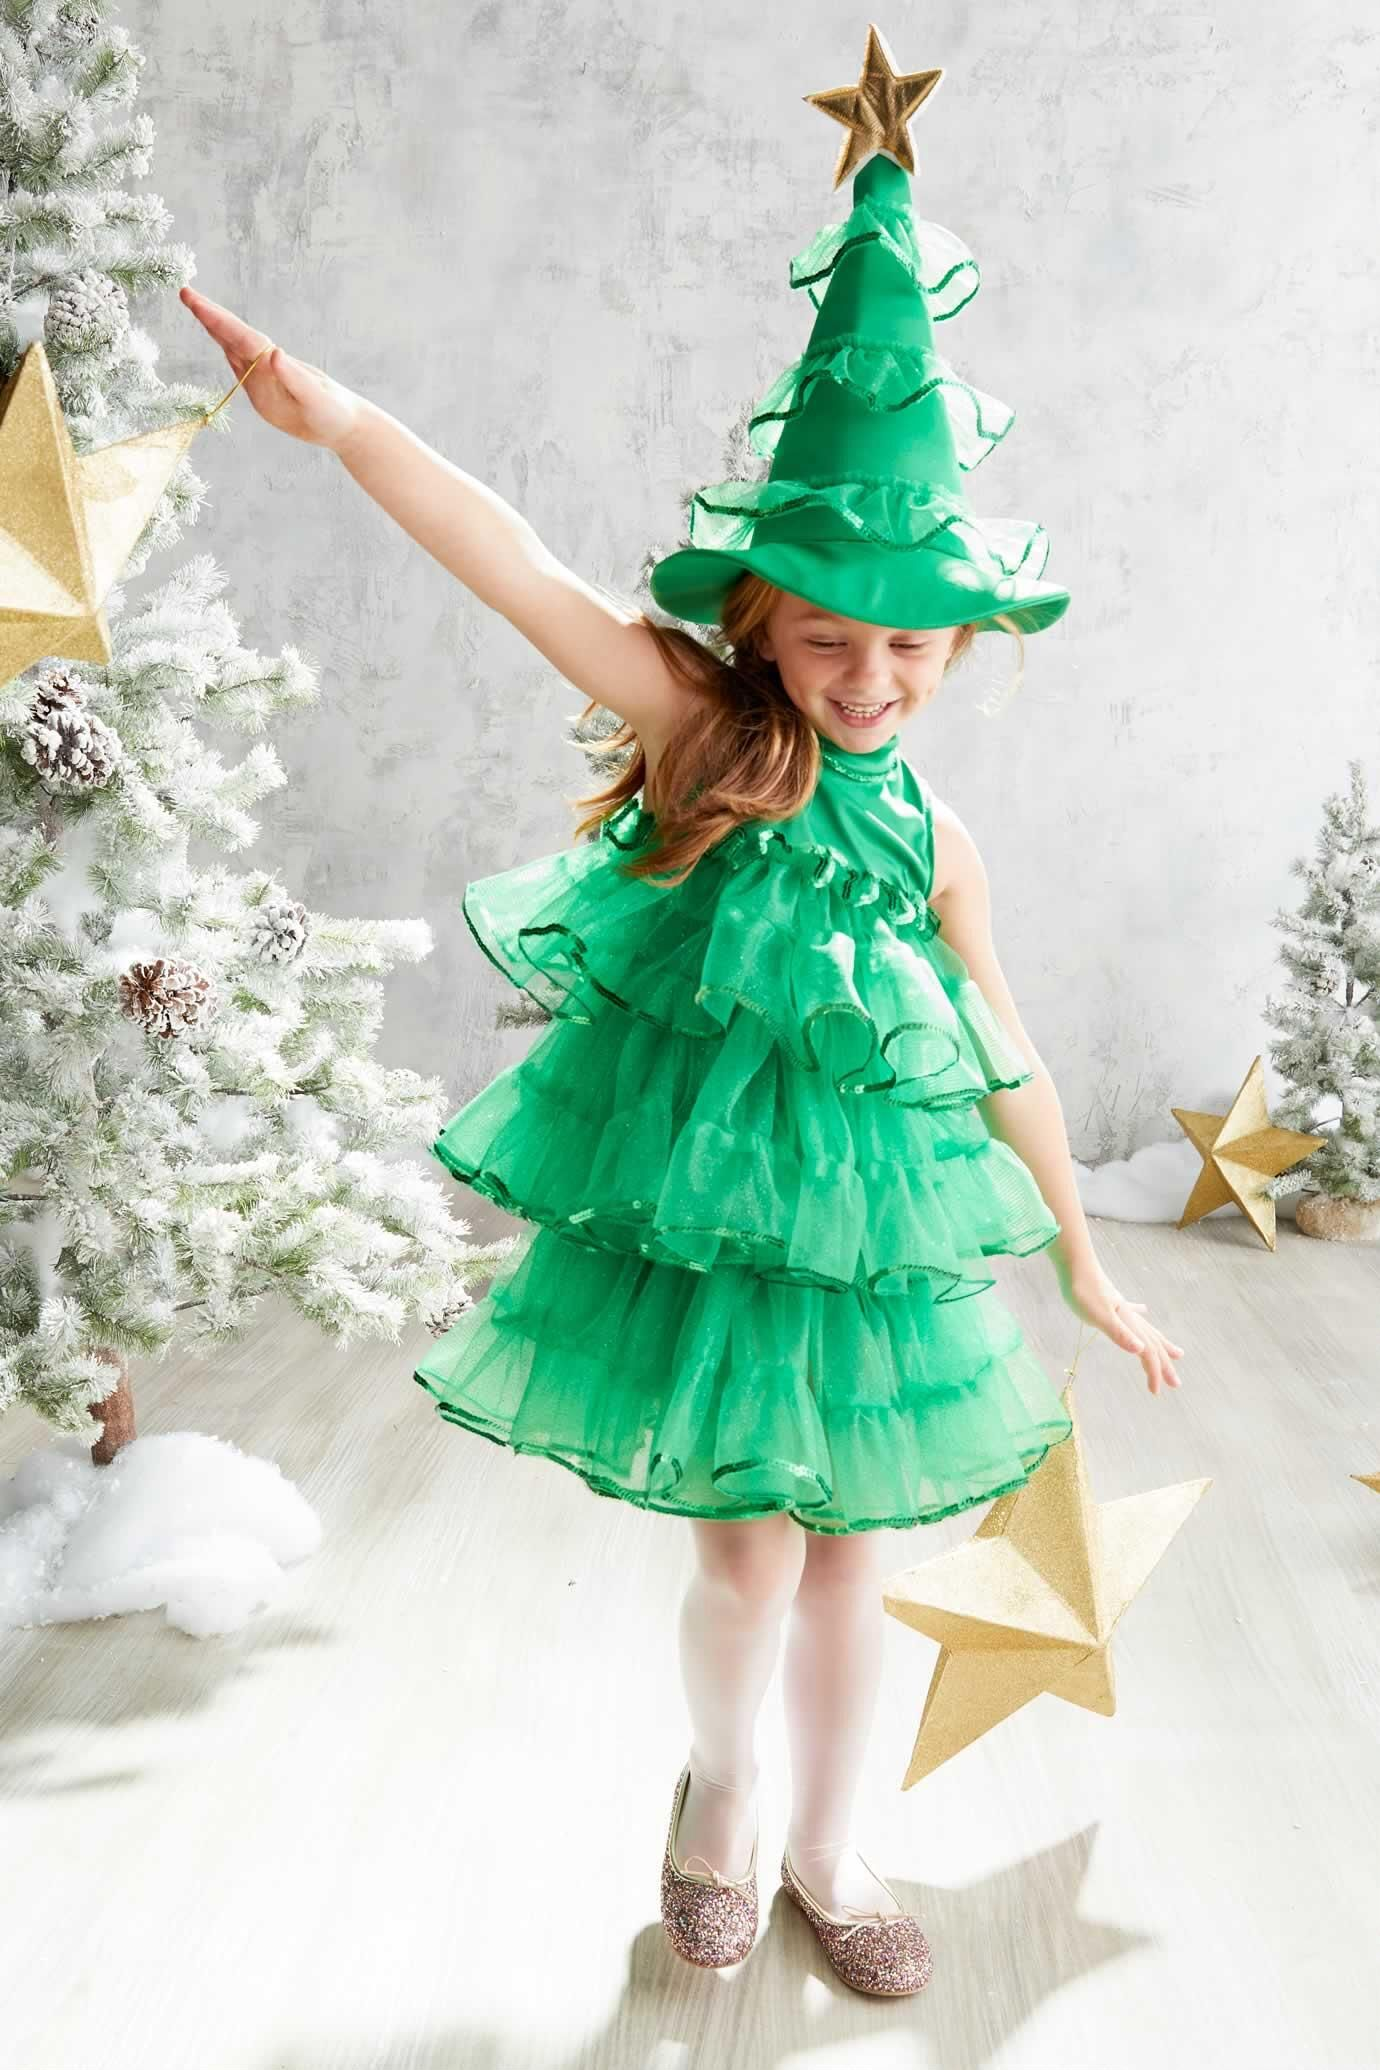 Glitter Tree Dress Costume For Girls Tree Costume Christmas Tree Dress Christmas Tree Costume